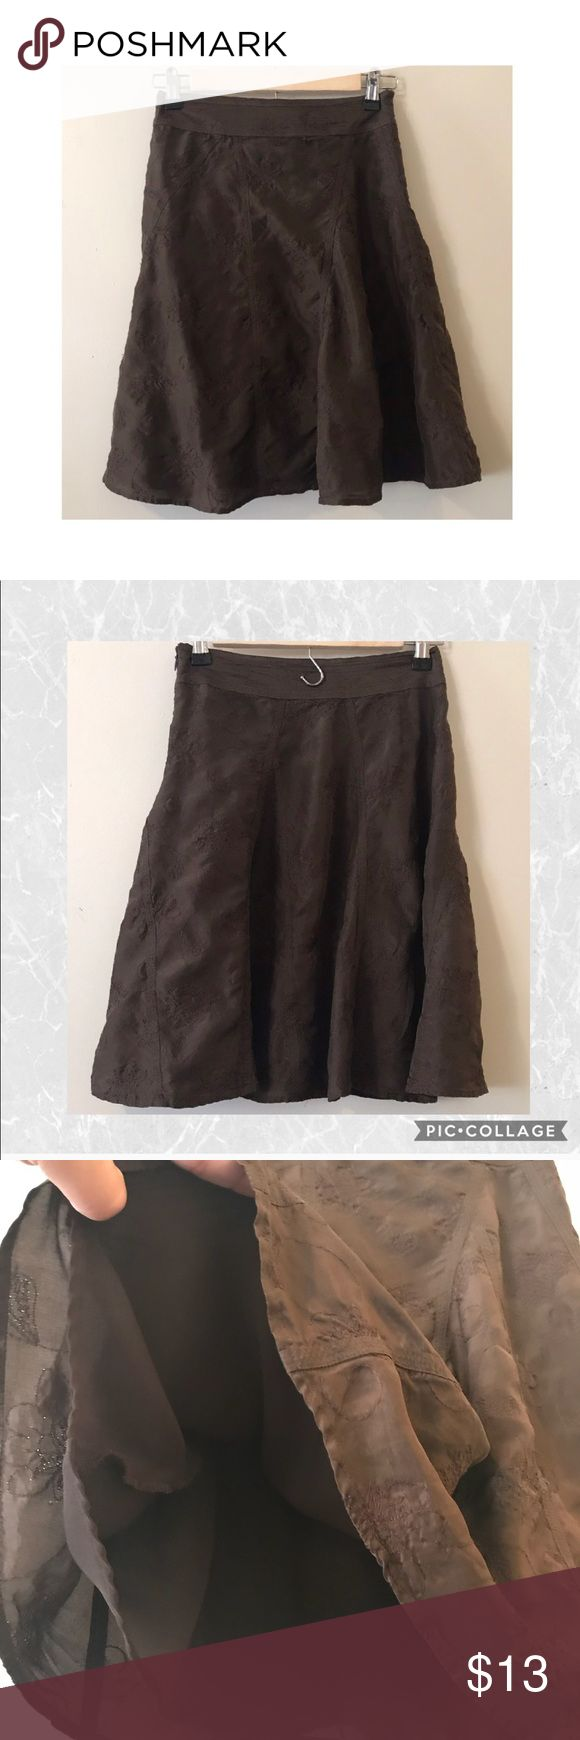 "Forever21 Brown Embroidered Skirt Pre loved in Great conditions brown Embroidered skirt. Fully lined. Approx measurements laying flat 20""L Waist 12.5"" and 100% Silk Forever 21 Skirts"